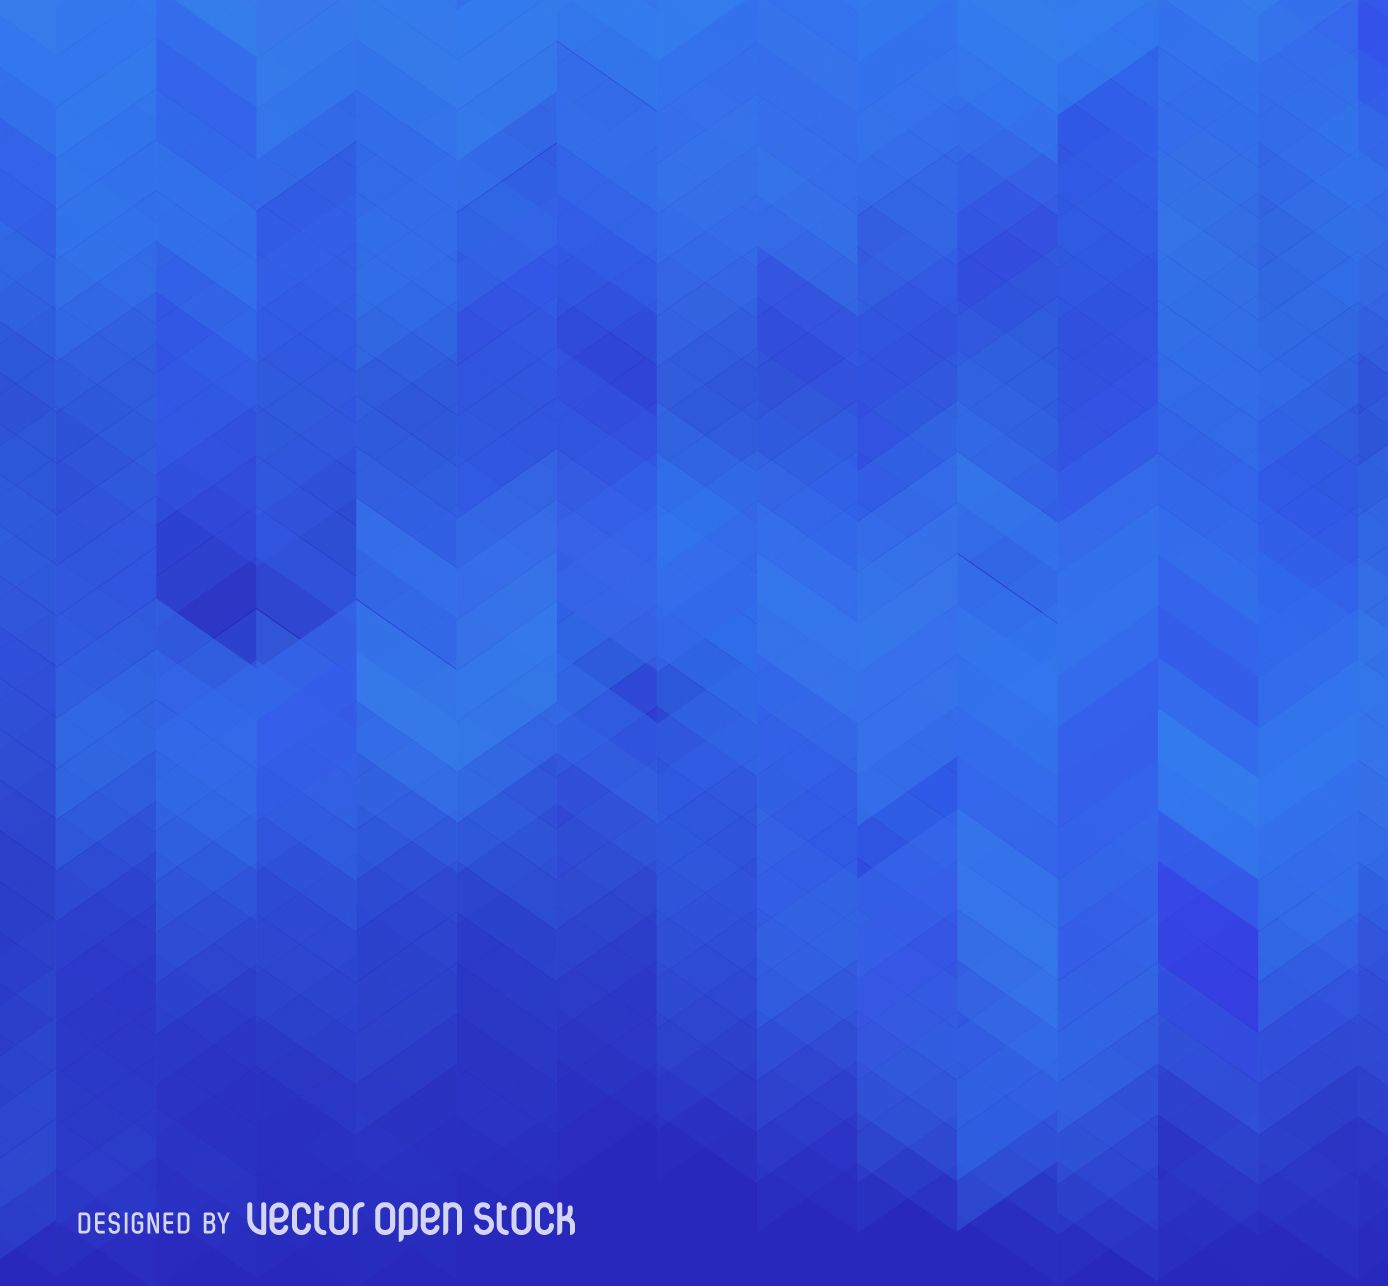 Abstract Background Design In Tones Of Blue Backdrop Made From